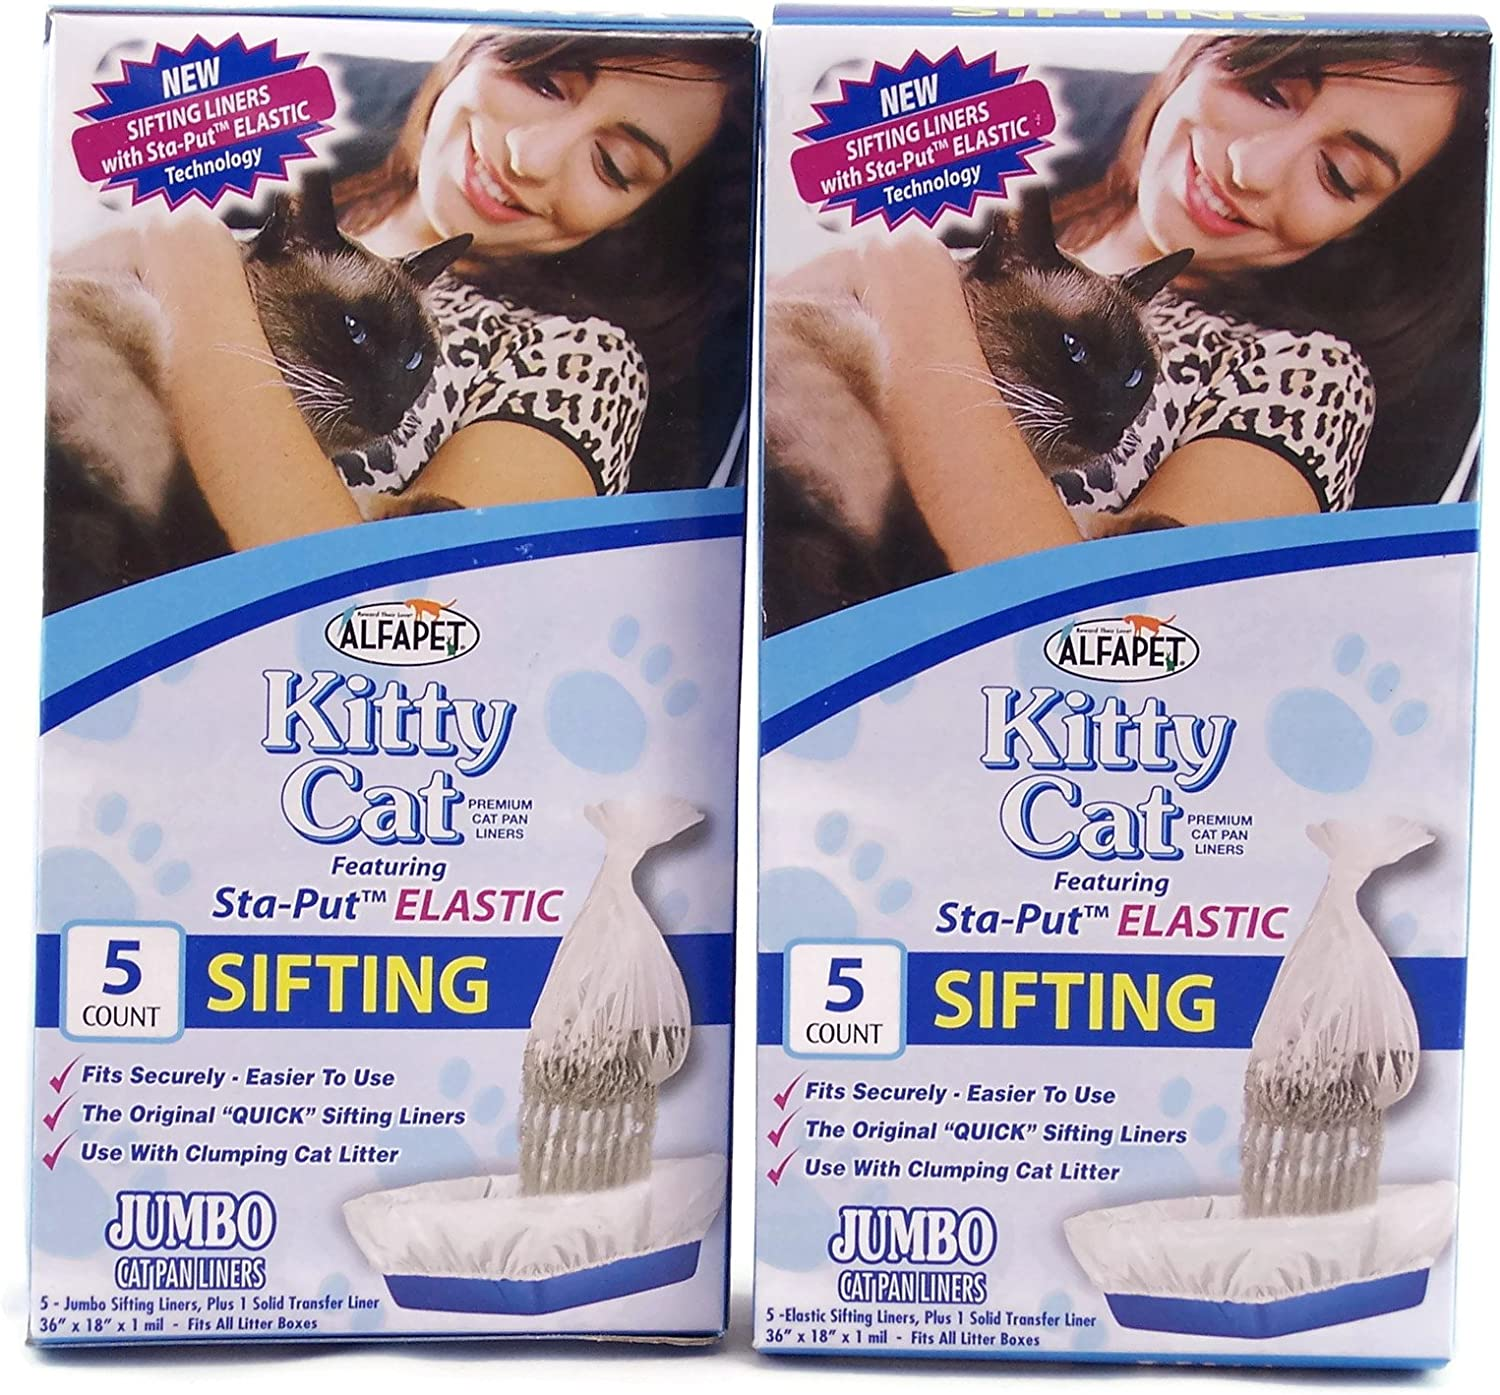 Alfapet Kitty Cat Staput Elastic Sifting Litter Box Liners Jumbo Size 5 Count (2Pack Boxes) by Alfa Pet